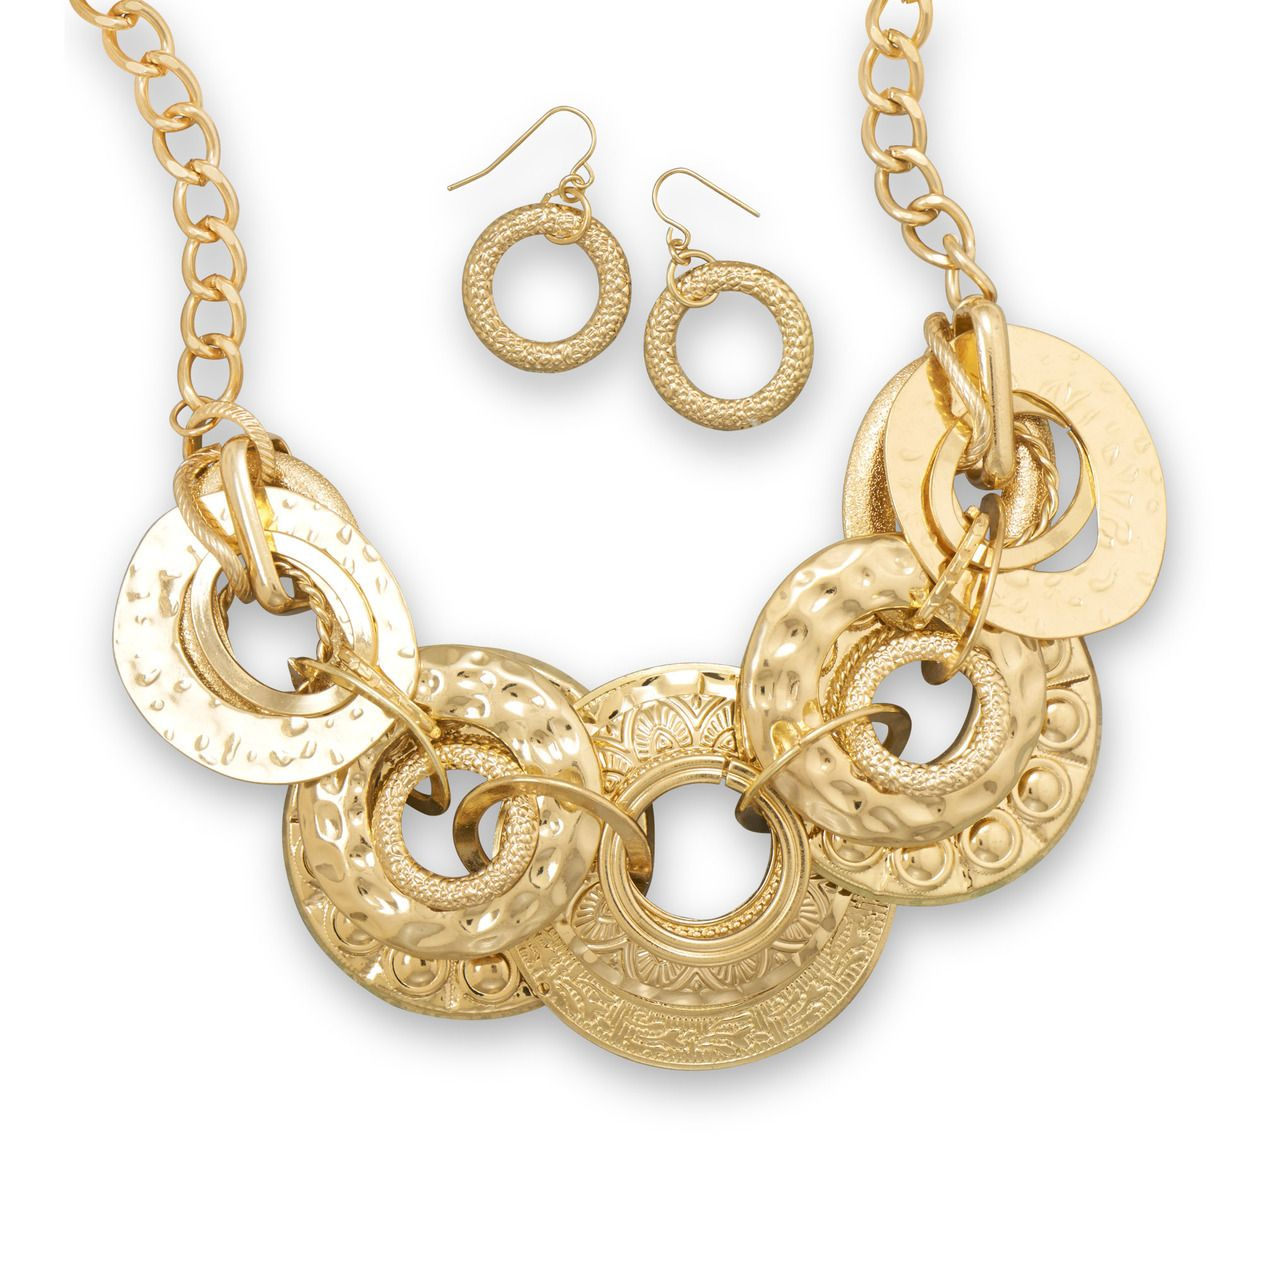 Scareflair streets of gold fashion necklace and earring set